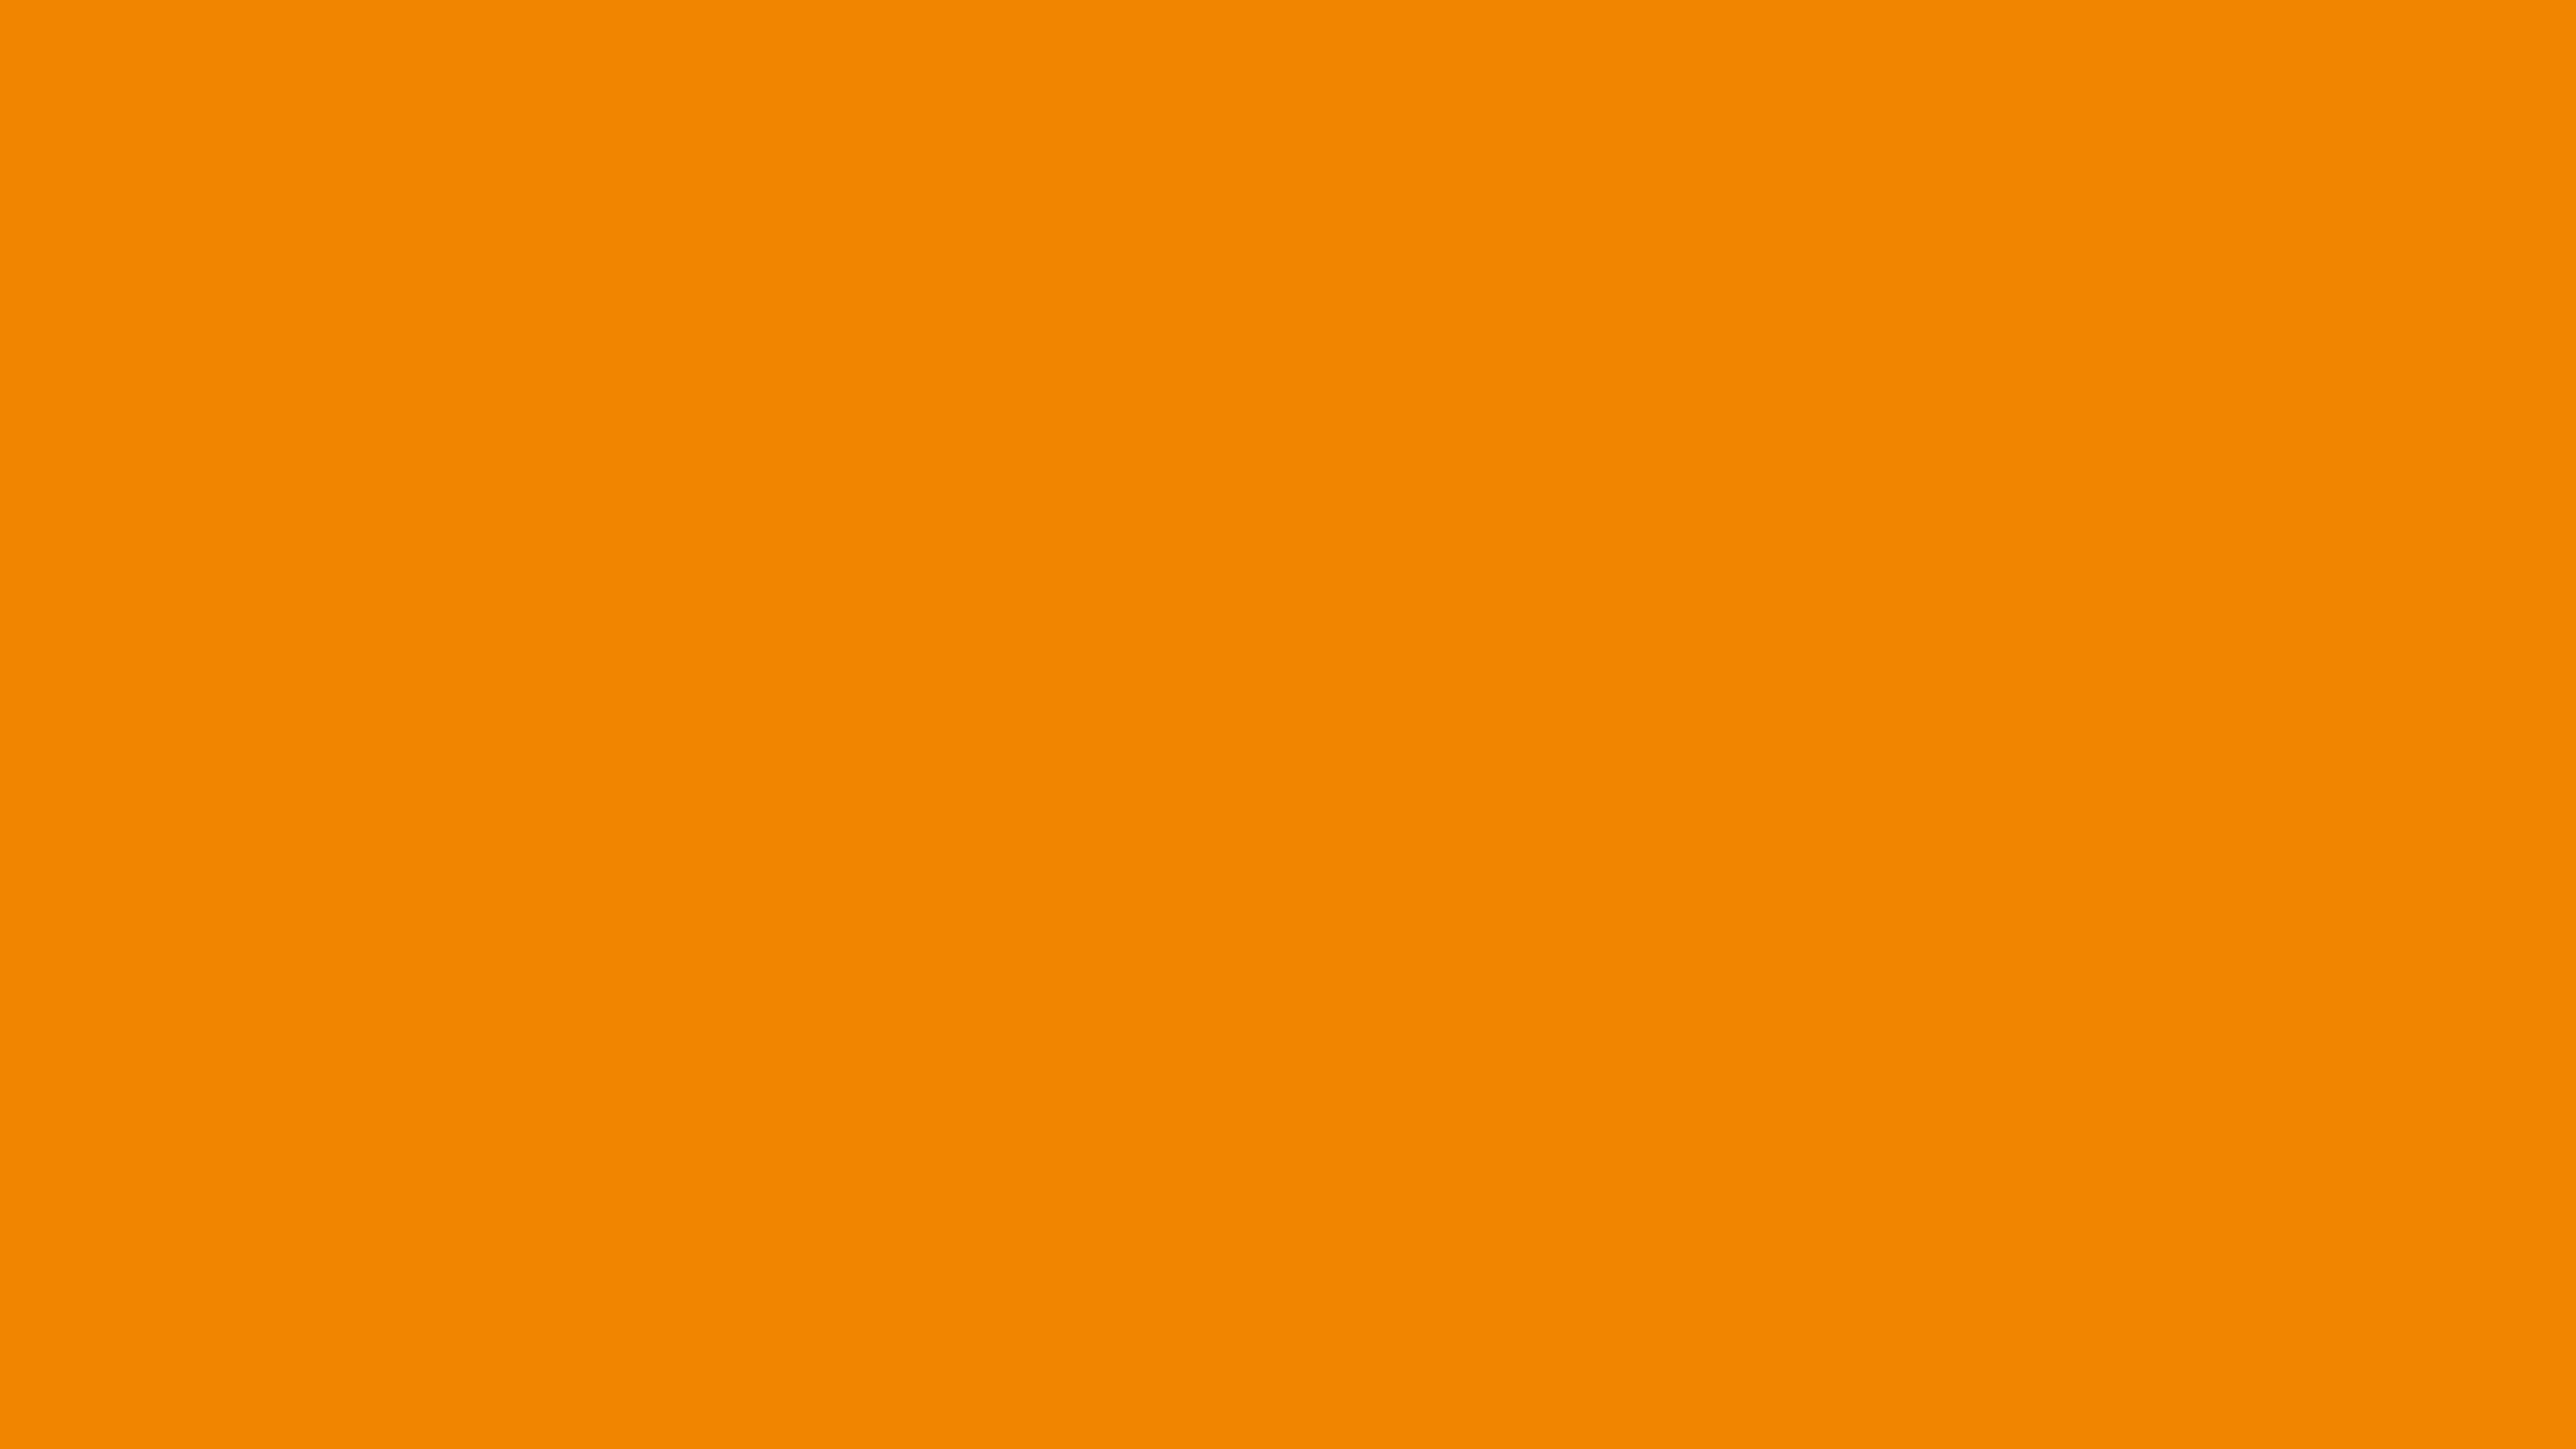 4096x2304 Tangerine Solid Color Background